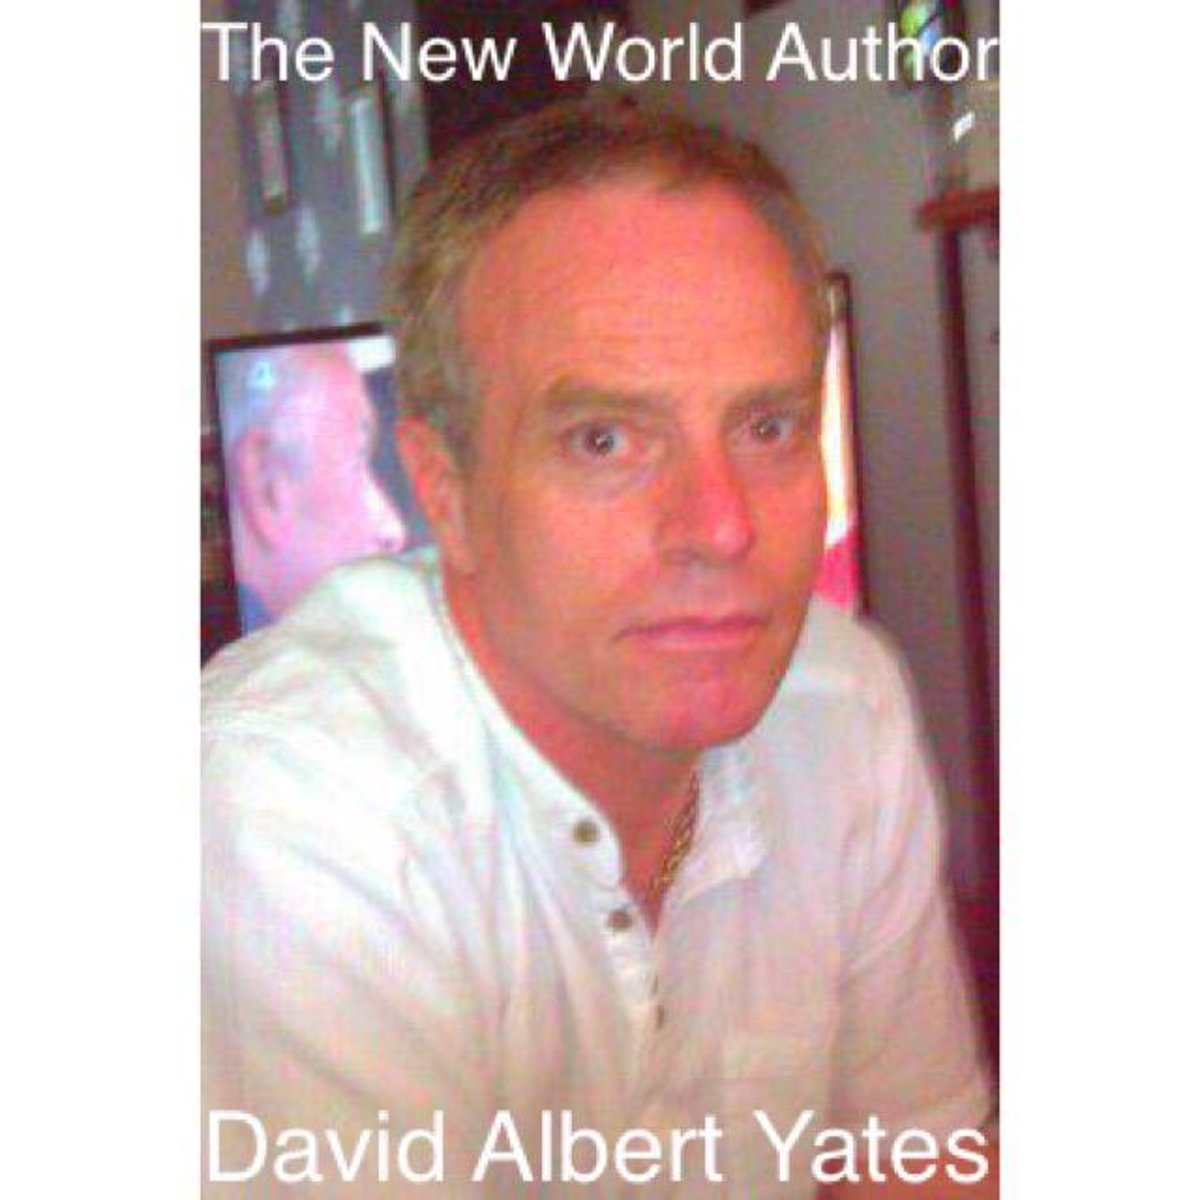 The New World Author